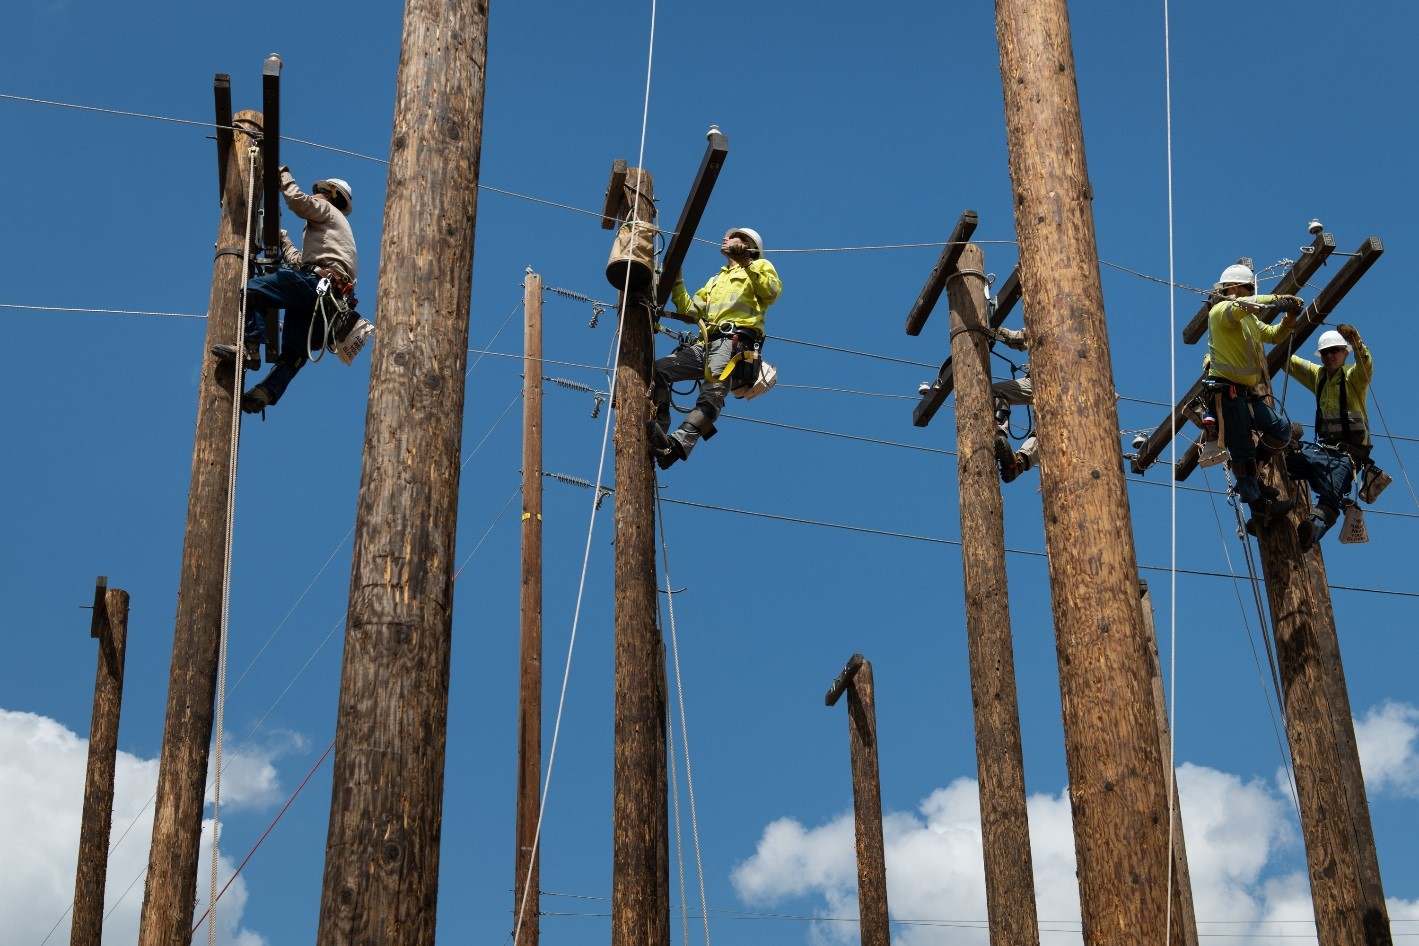 There are 170 million wood poles and 9 million miles of wire in service across the United States.